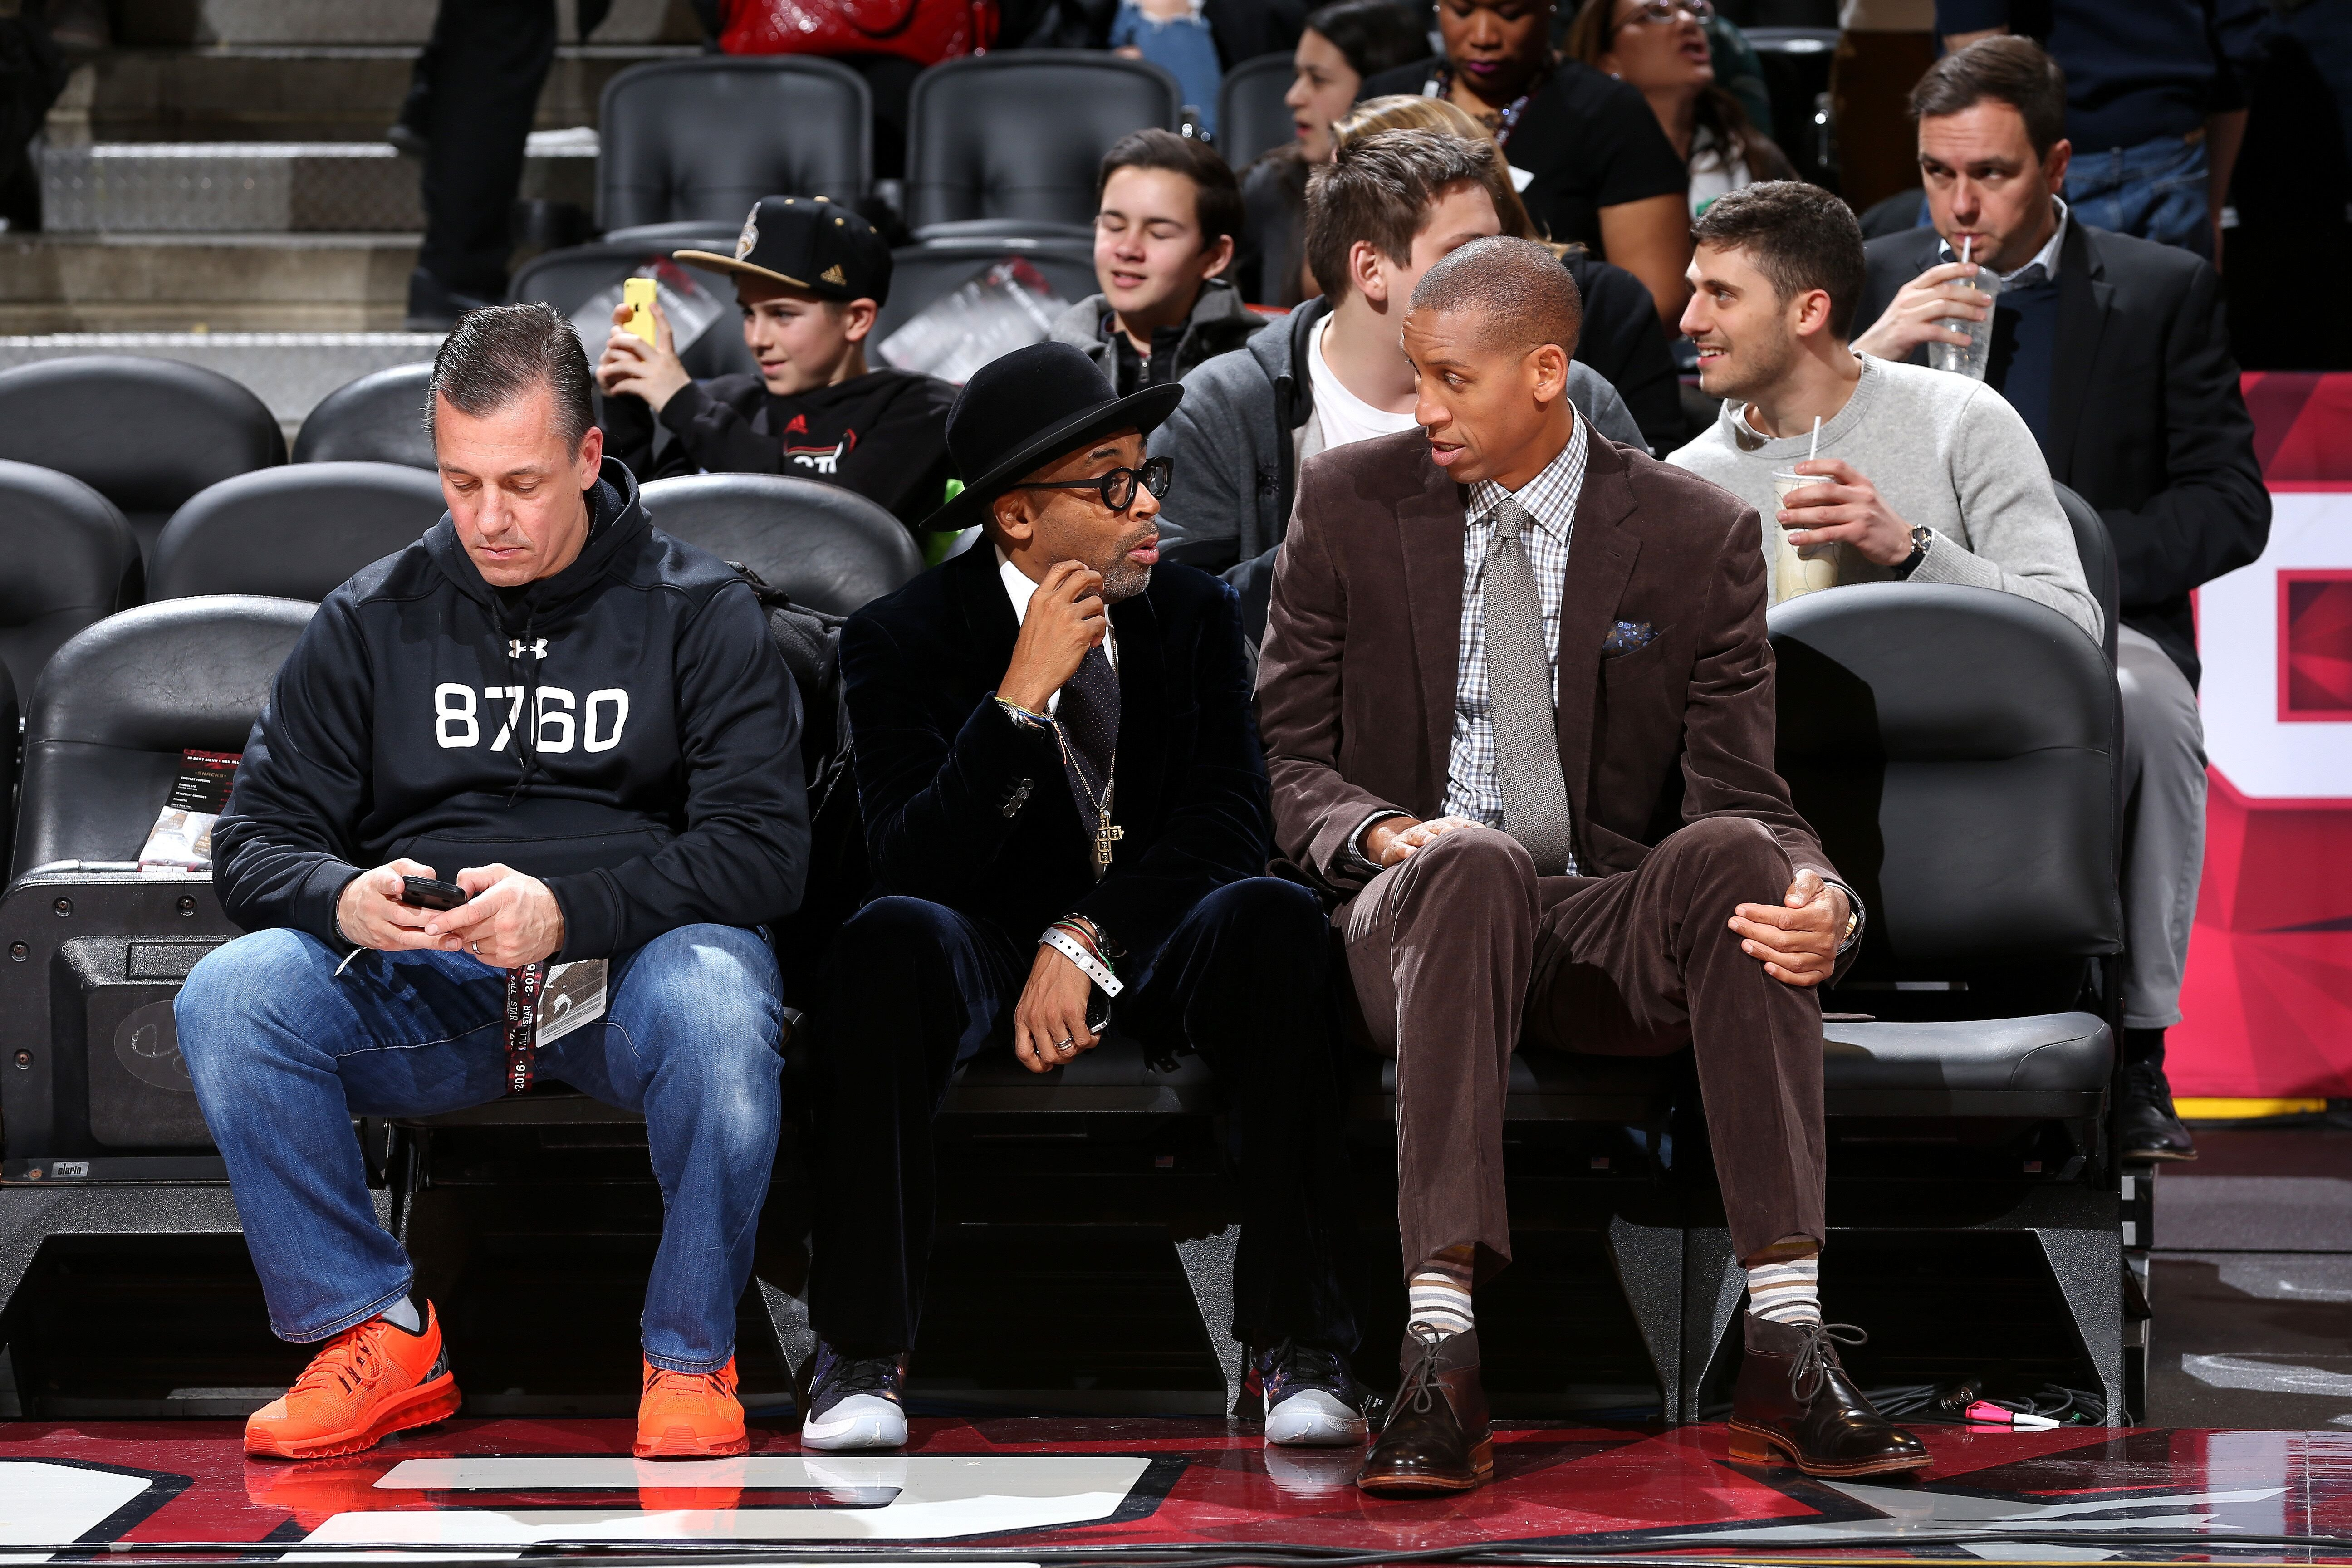 Spike Lee and former NBA player Reggie Miller of the Indiana Pacers have a discussion during the Taco Bell Skills Challenge as part of NBA All-Star 2016 in Toronto | Source: Getty Images